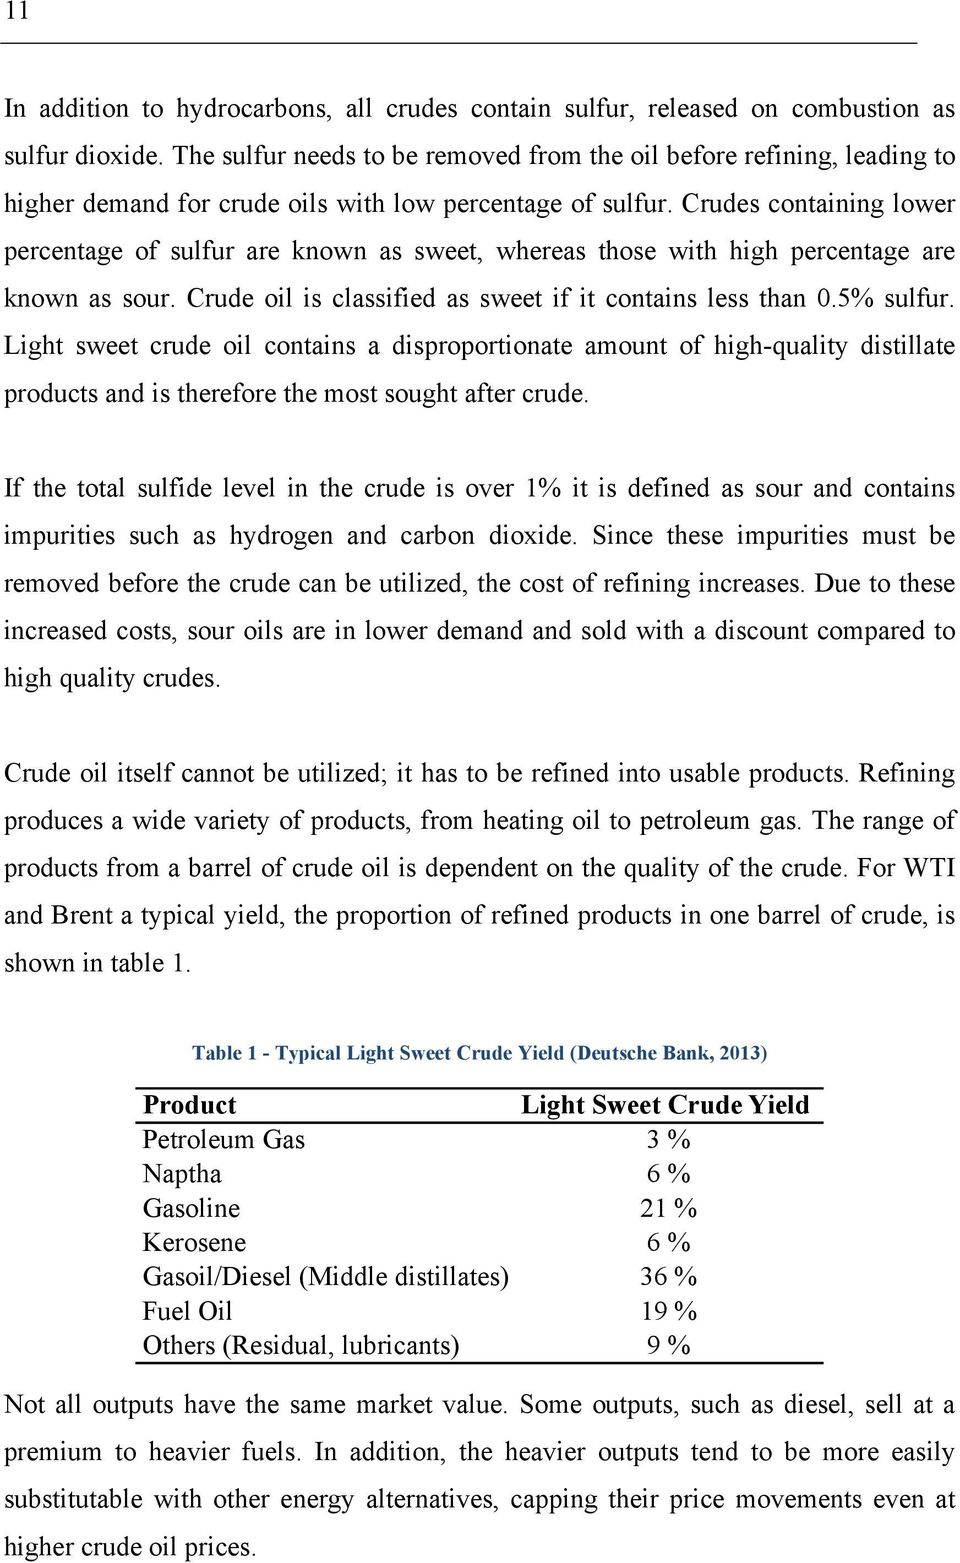 Crude Oil Price Differentials - PDF